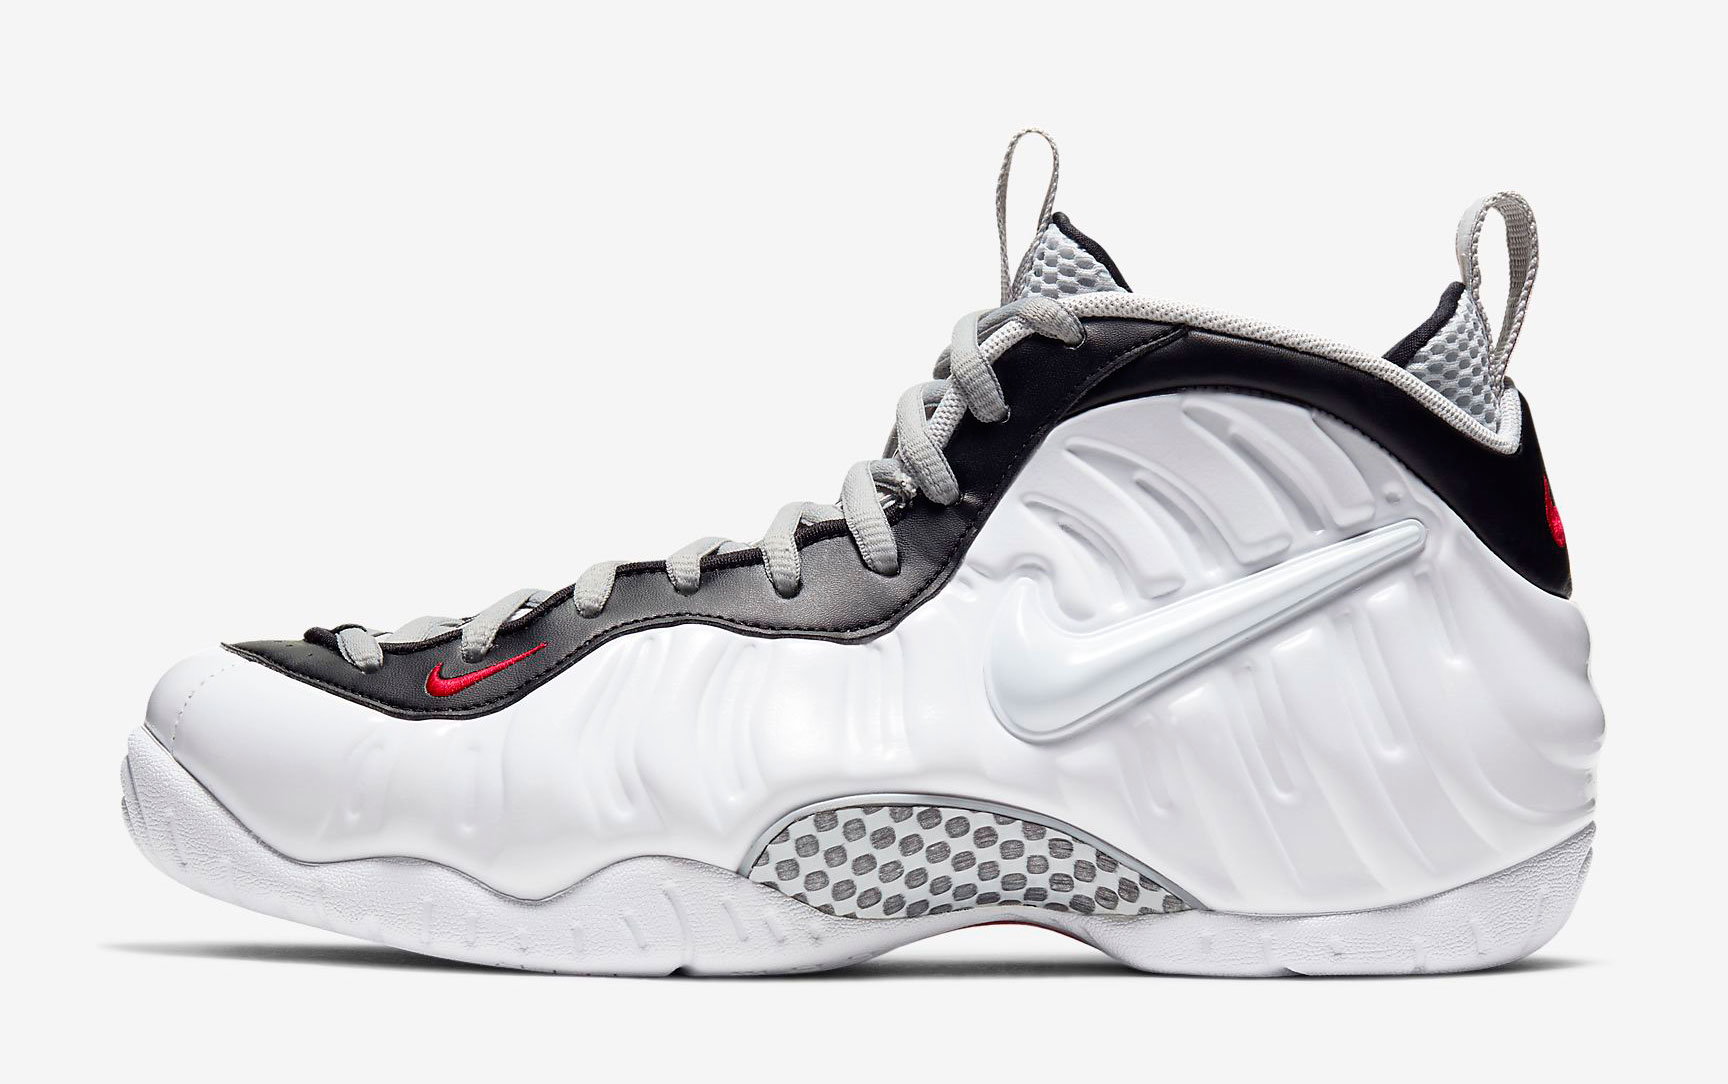 nike-air-foamposite-pro-white-black-red-release-date-price